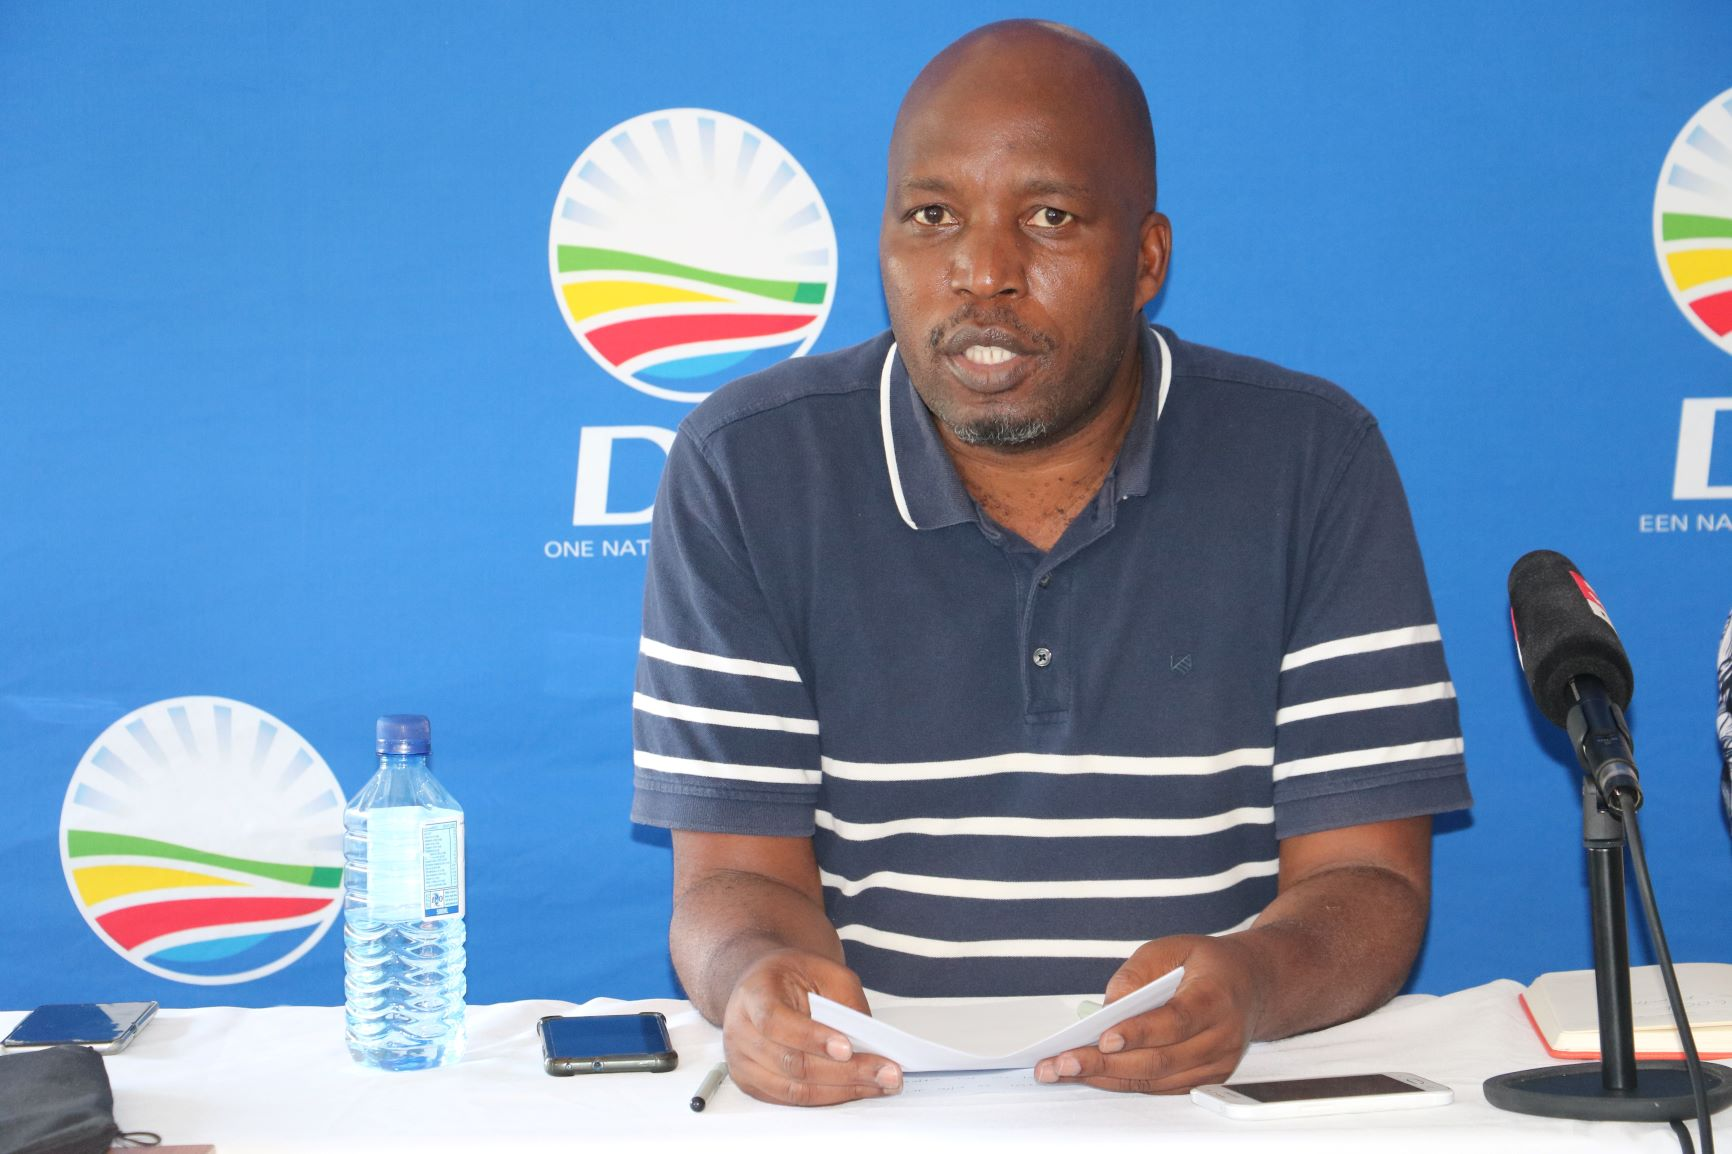 DA calls on eThekwini Acting Mayor to urgently table outstanding Covid-19 expenditure report